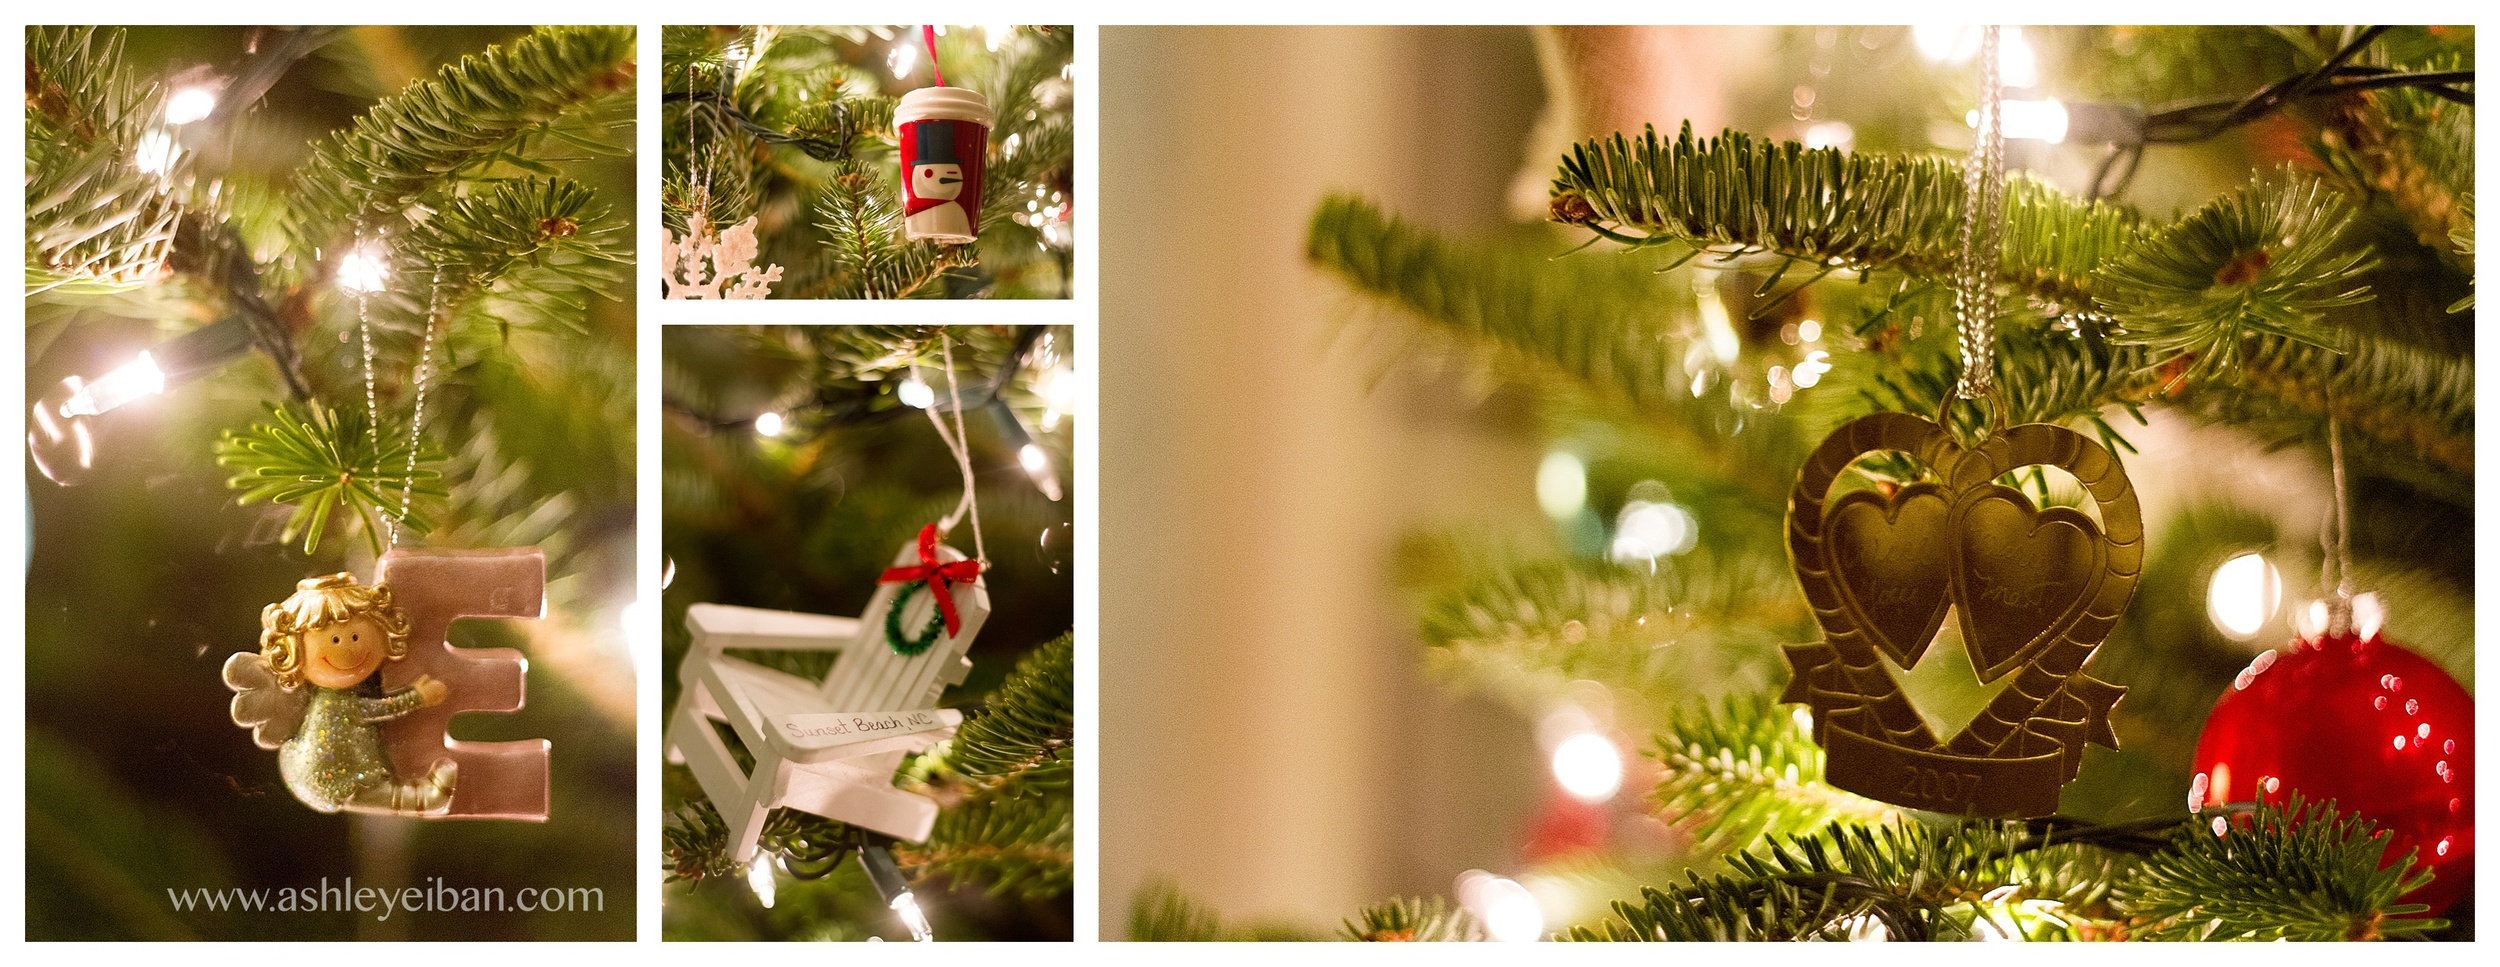 Some of our special ornaments! On the left- Emmie's very first ornament, Starbucks Mug- where Mike and I first met. The Sunset Beach Vacation Chair- and on the right- the ornament Mike proposed to me with!!